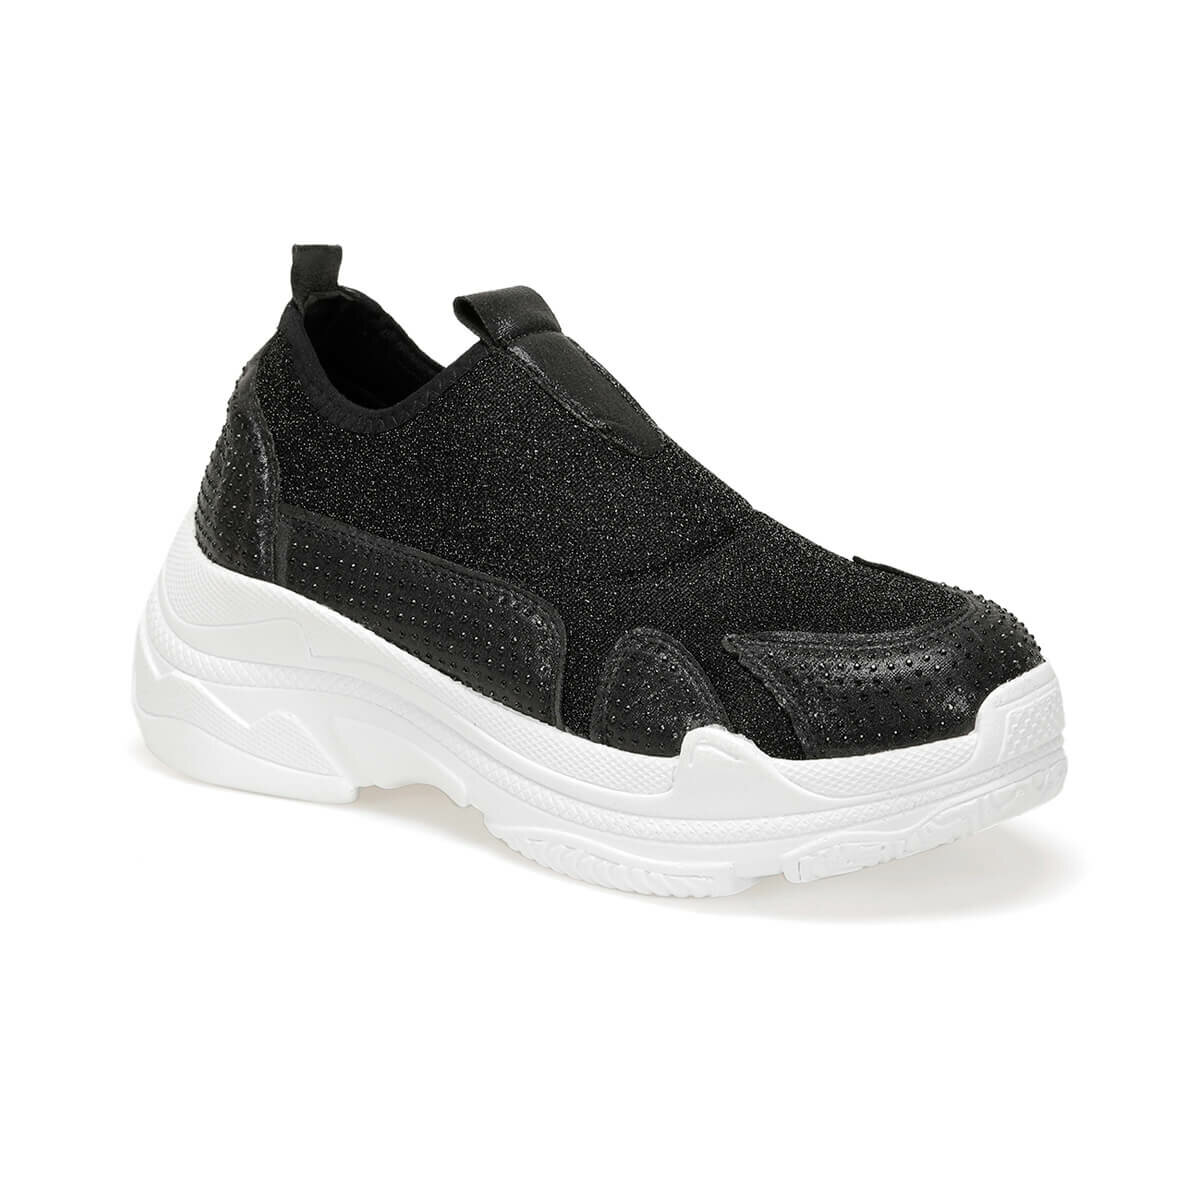 FLO PUNCH85Z Black Women 'S Sneaker Shoes BUTIGO